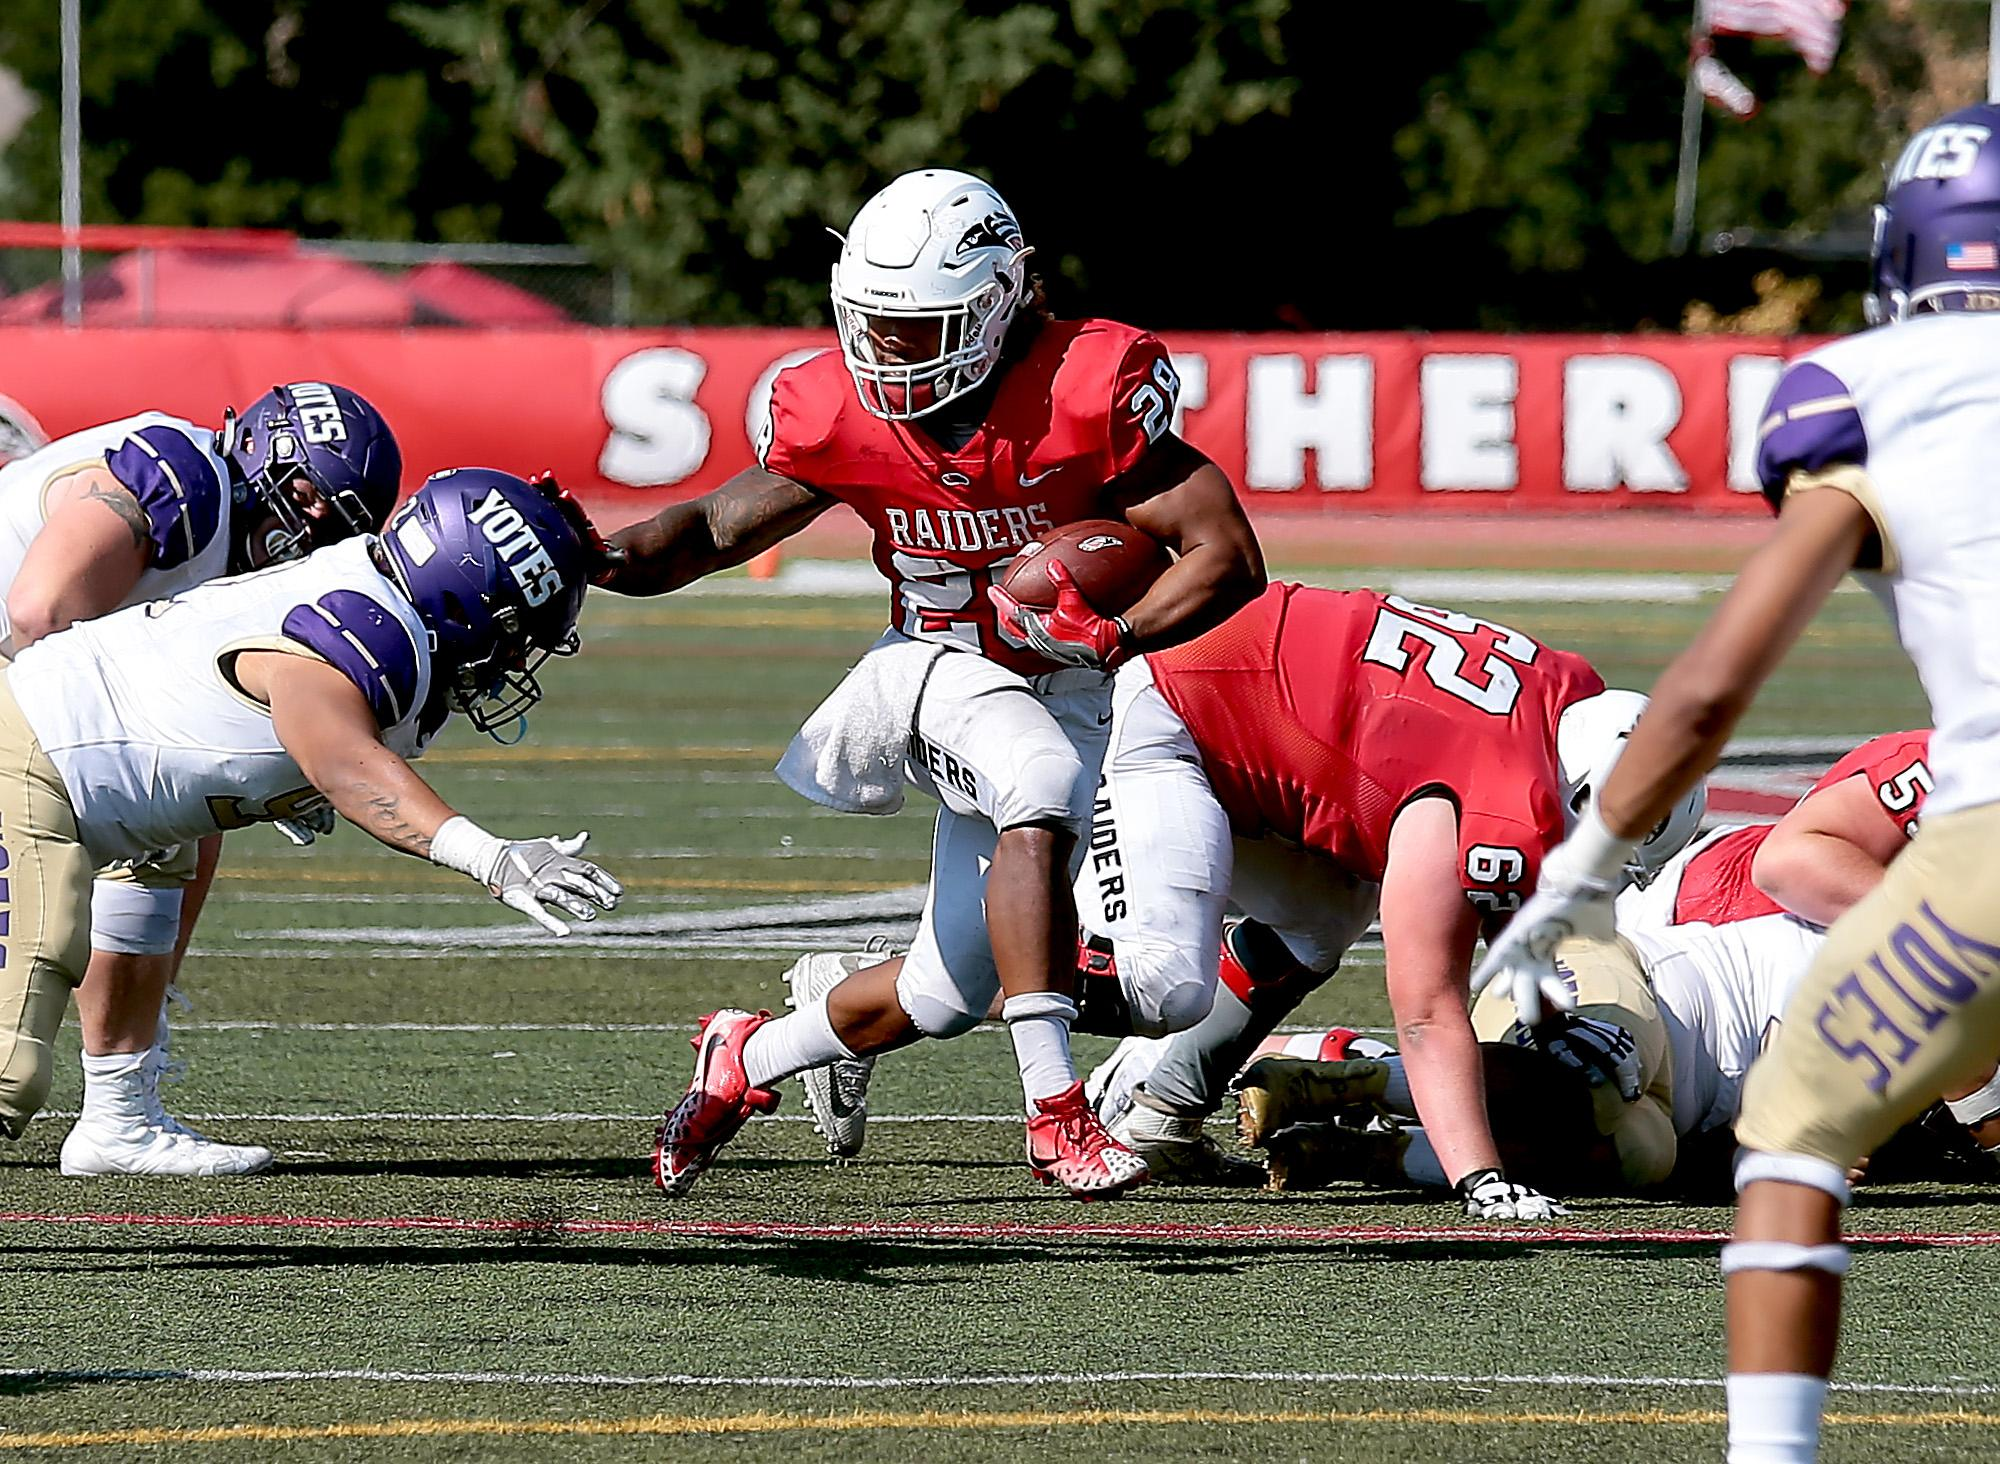 Larry Stauth Jr./For the Daily TidingsSouthern Oregon University senior running back Rey Vega fights his way through The College of Idaho defense en route to his second touchdown of the day at Raider Stadium on Saturday.